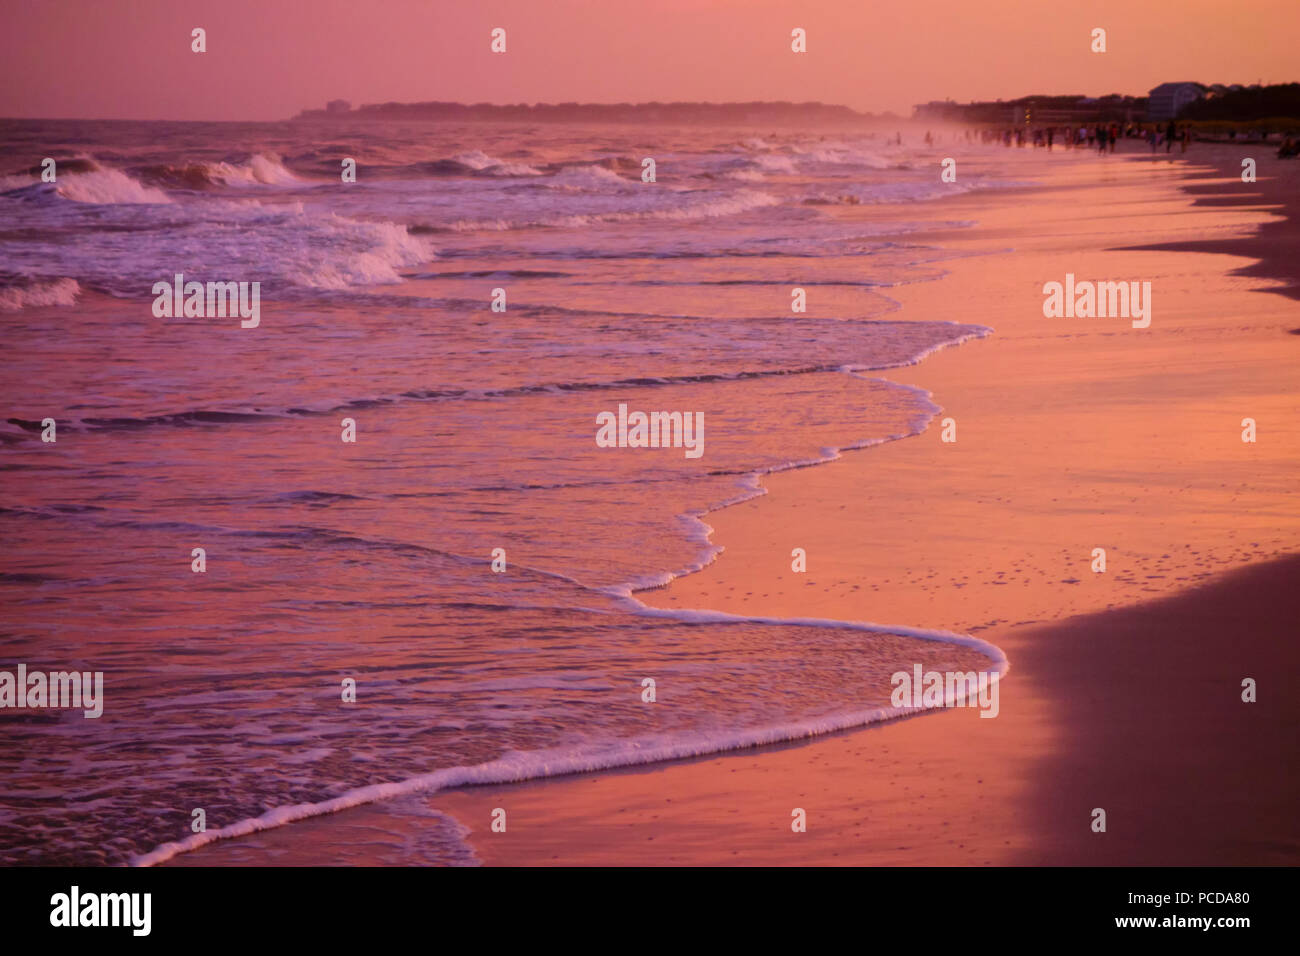 Dusk at Hilton Head South Carolina beach with waves on shore - Stock Image